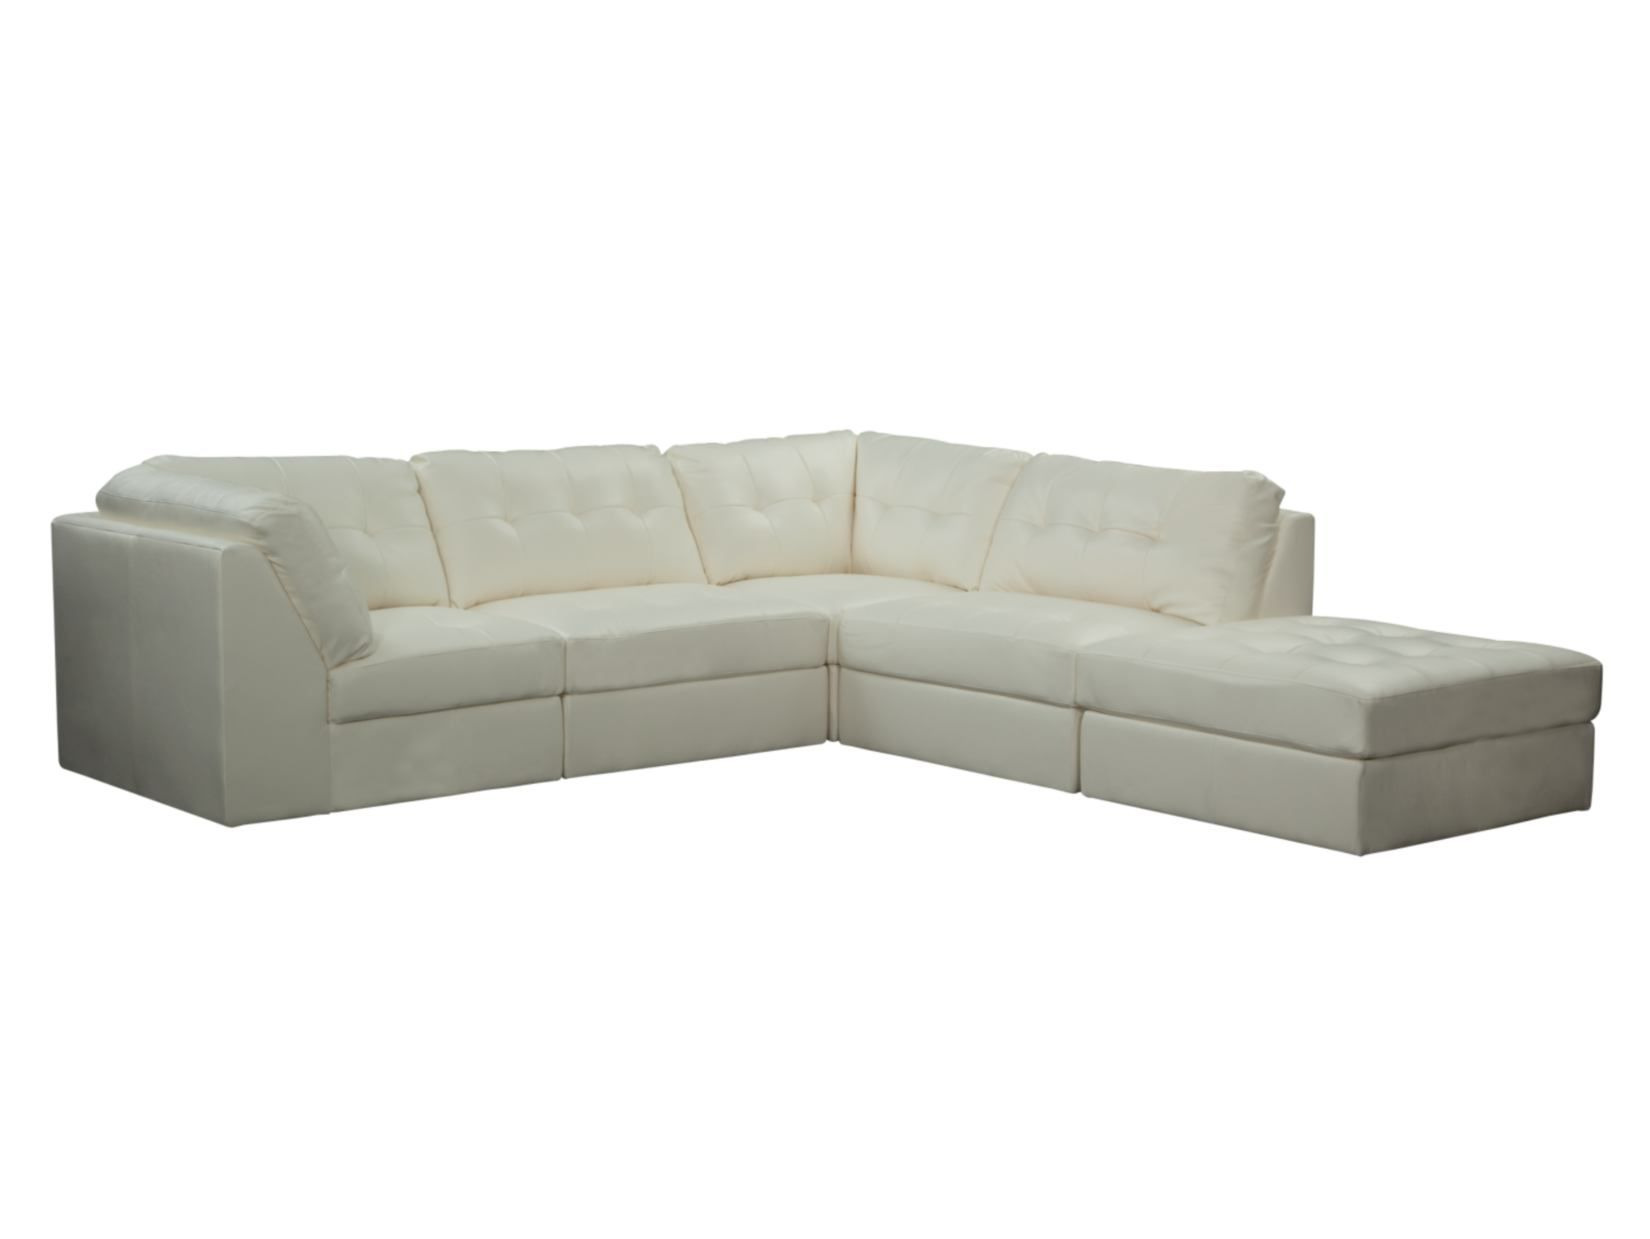 Aventura White 5 PC Sectional Value City Furniture